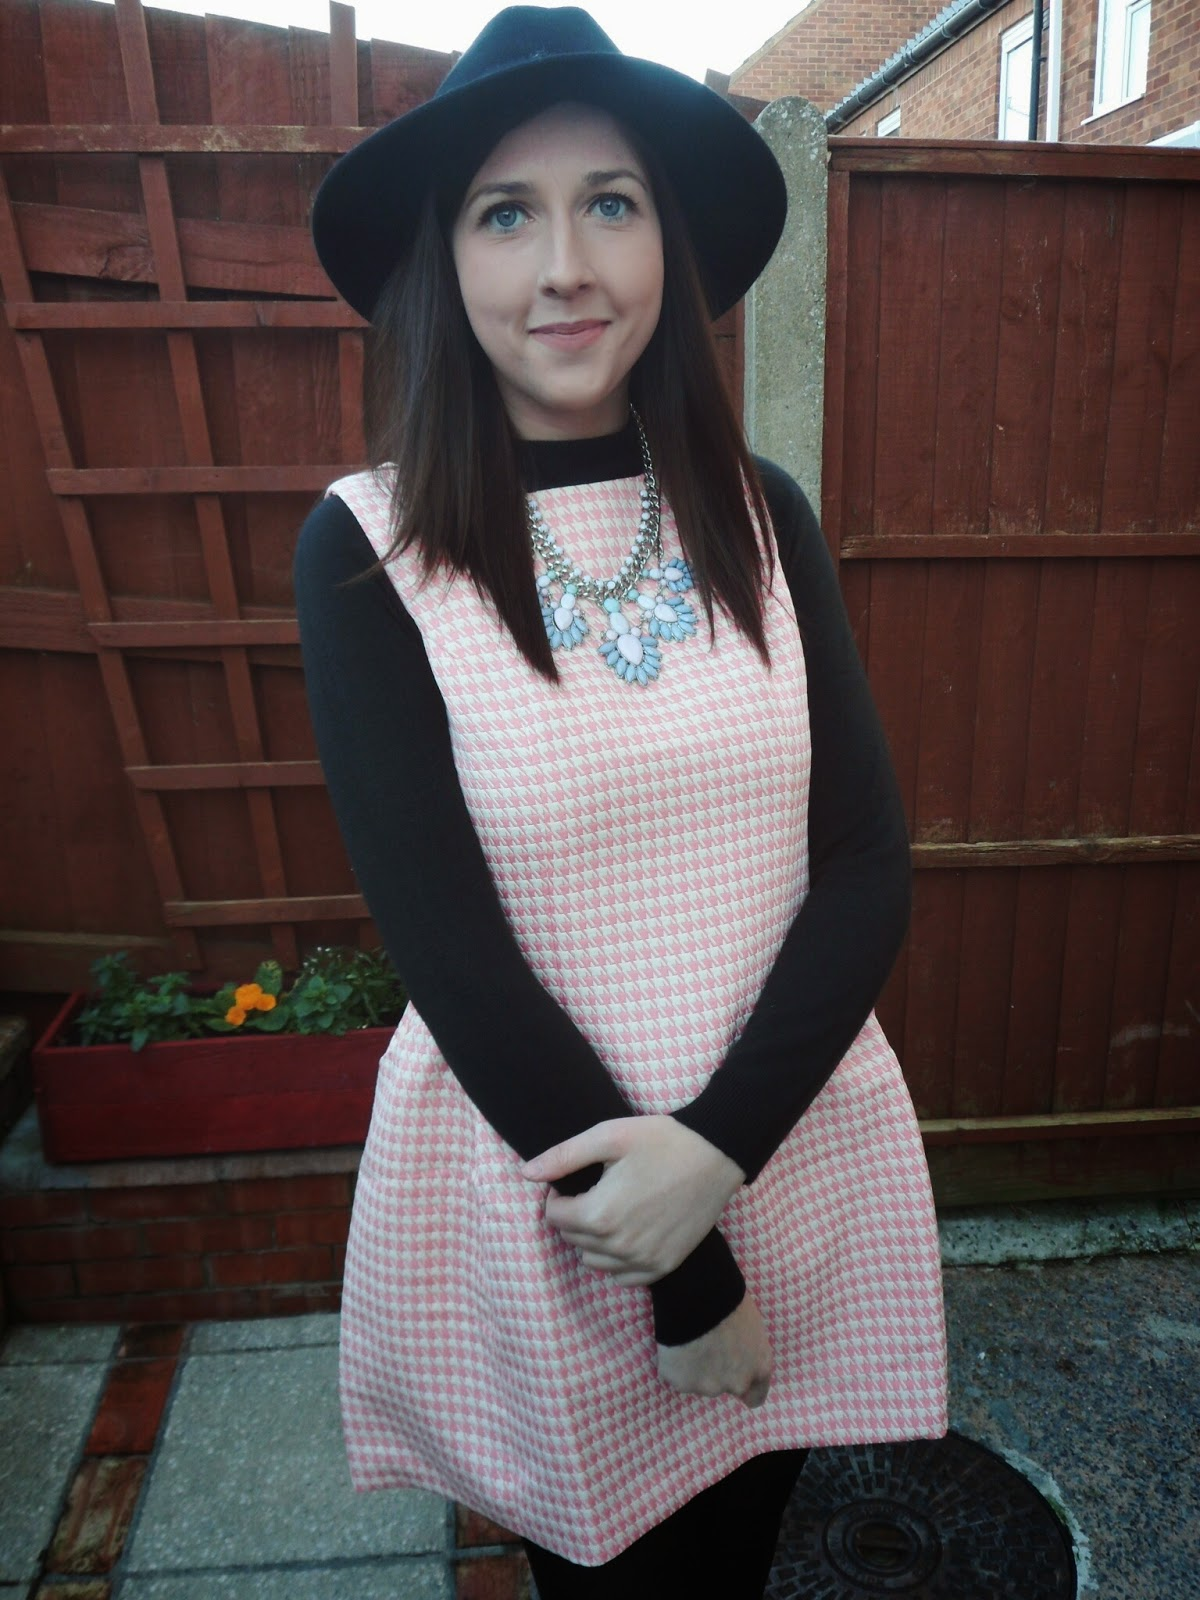 asseenonme, primark, fuschiawhite, asos, wiw, whatimwearing, whatibought, ootd, outfitoftheday, lotd, lookoftheday, fashion, fbloggers, fblogger, fahionblogger, newlook, rollneck, winterfashion, gingham